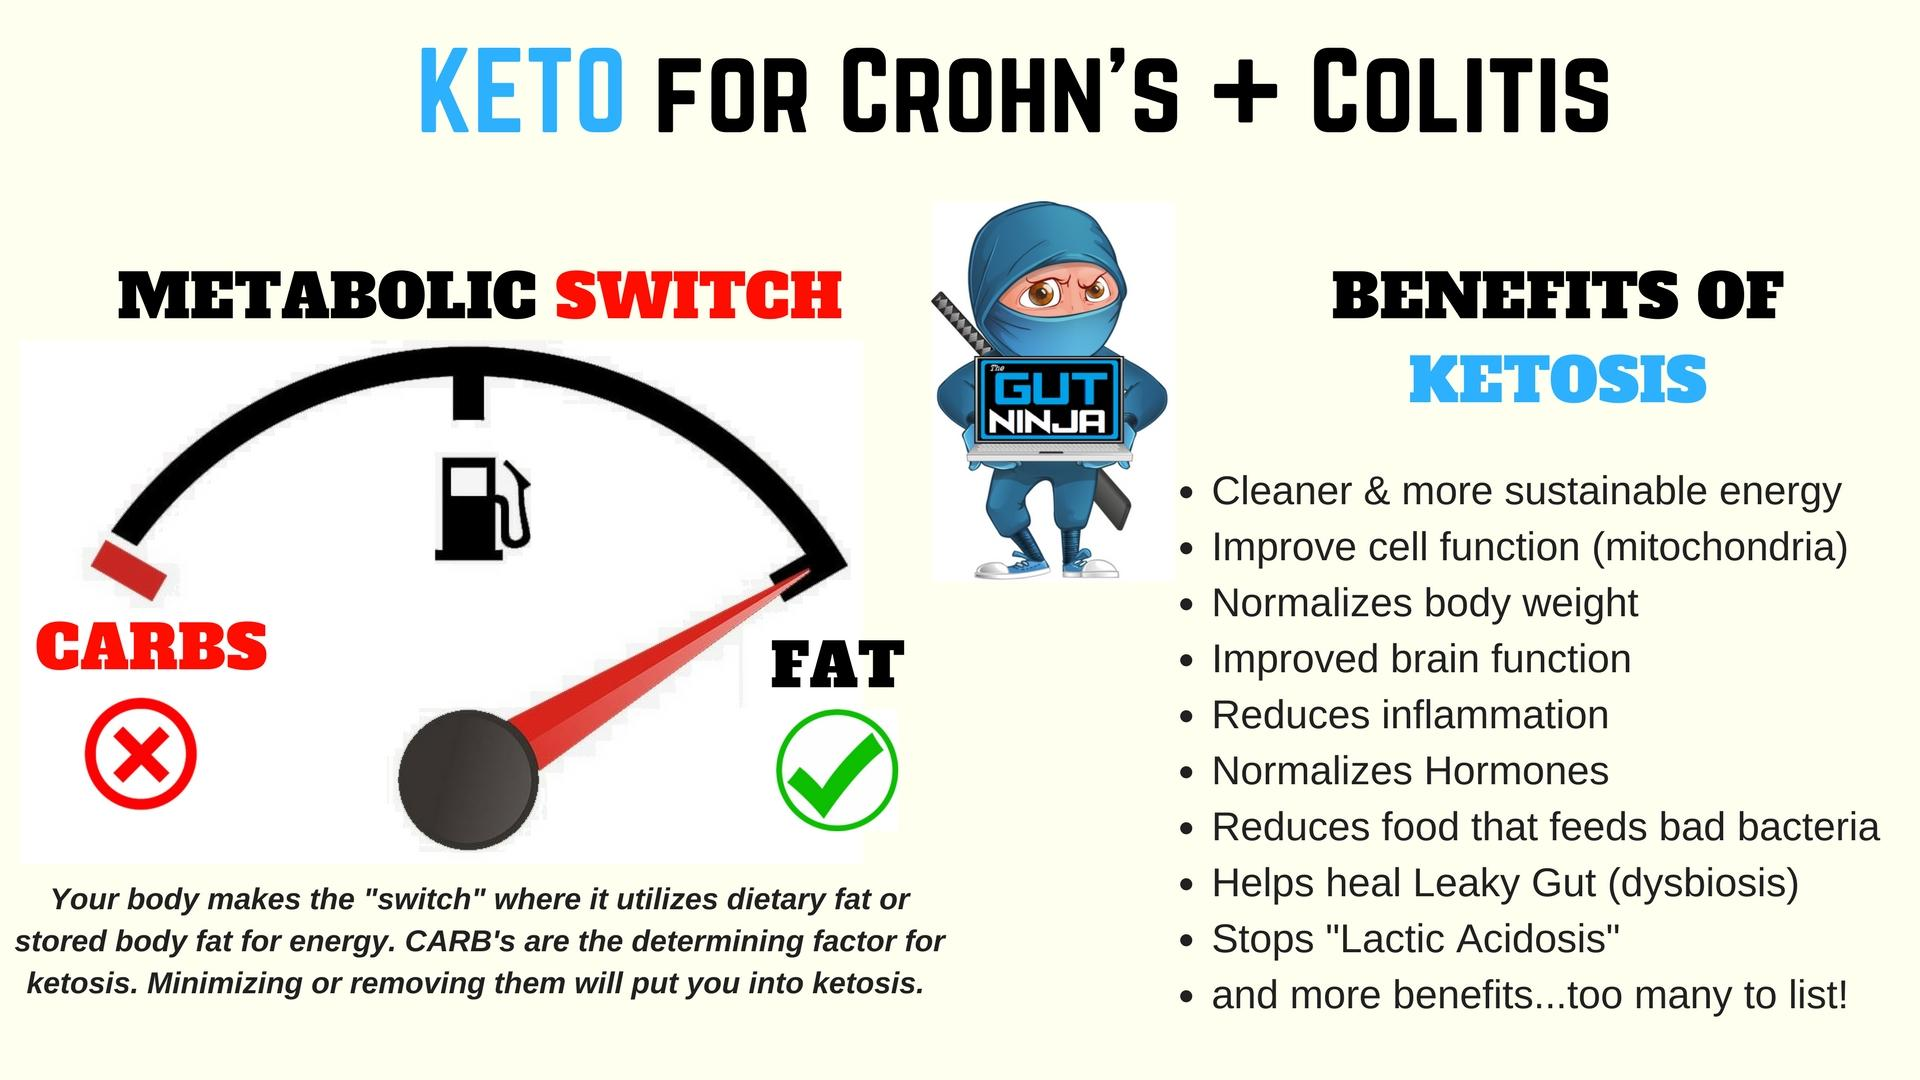 Ketogenic Diet for Crohn's and Colitis